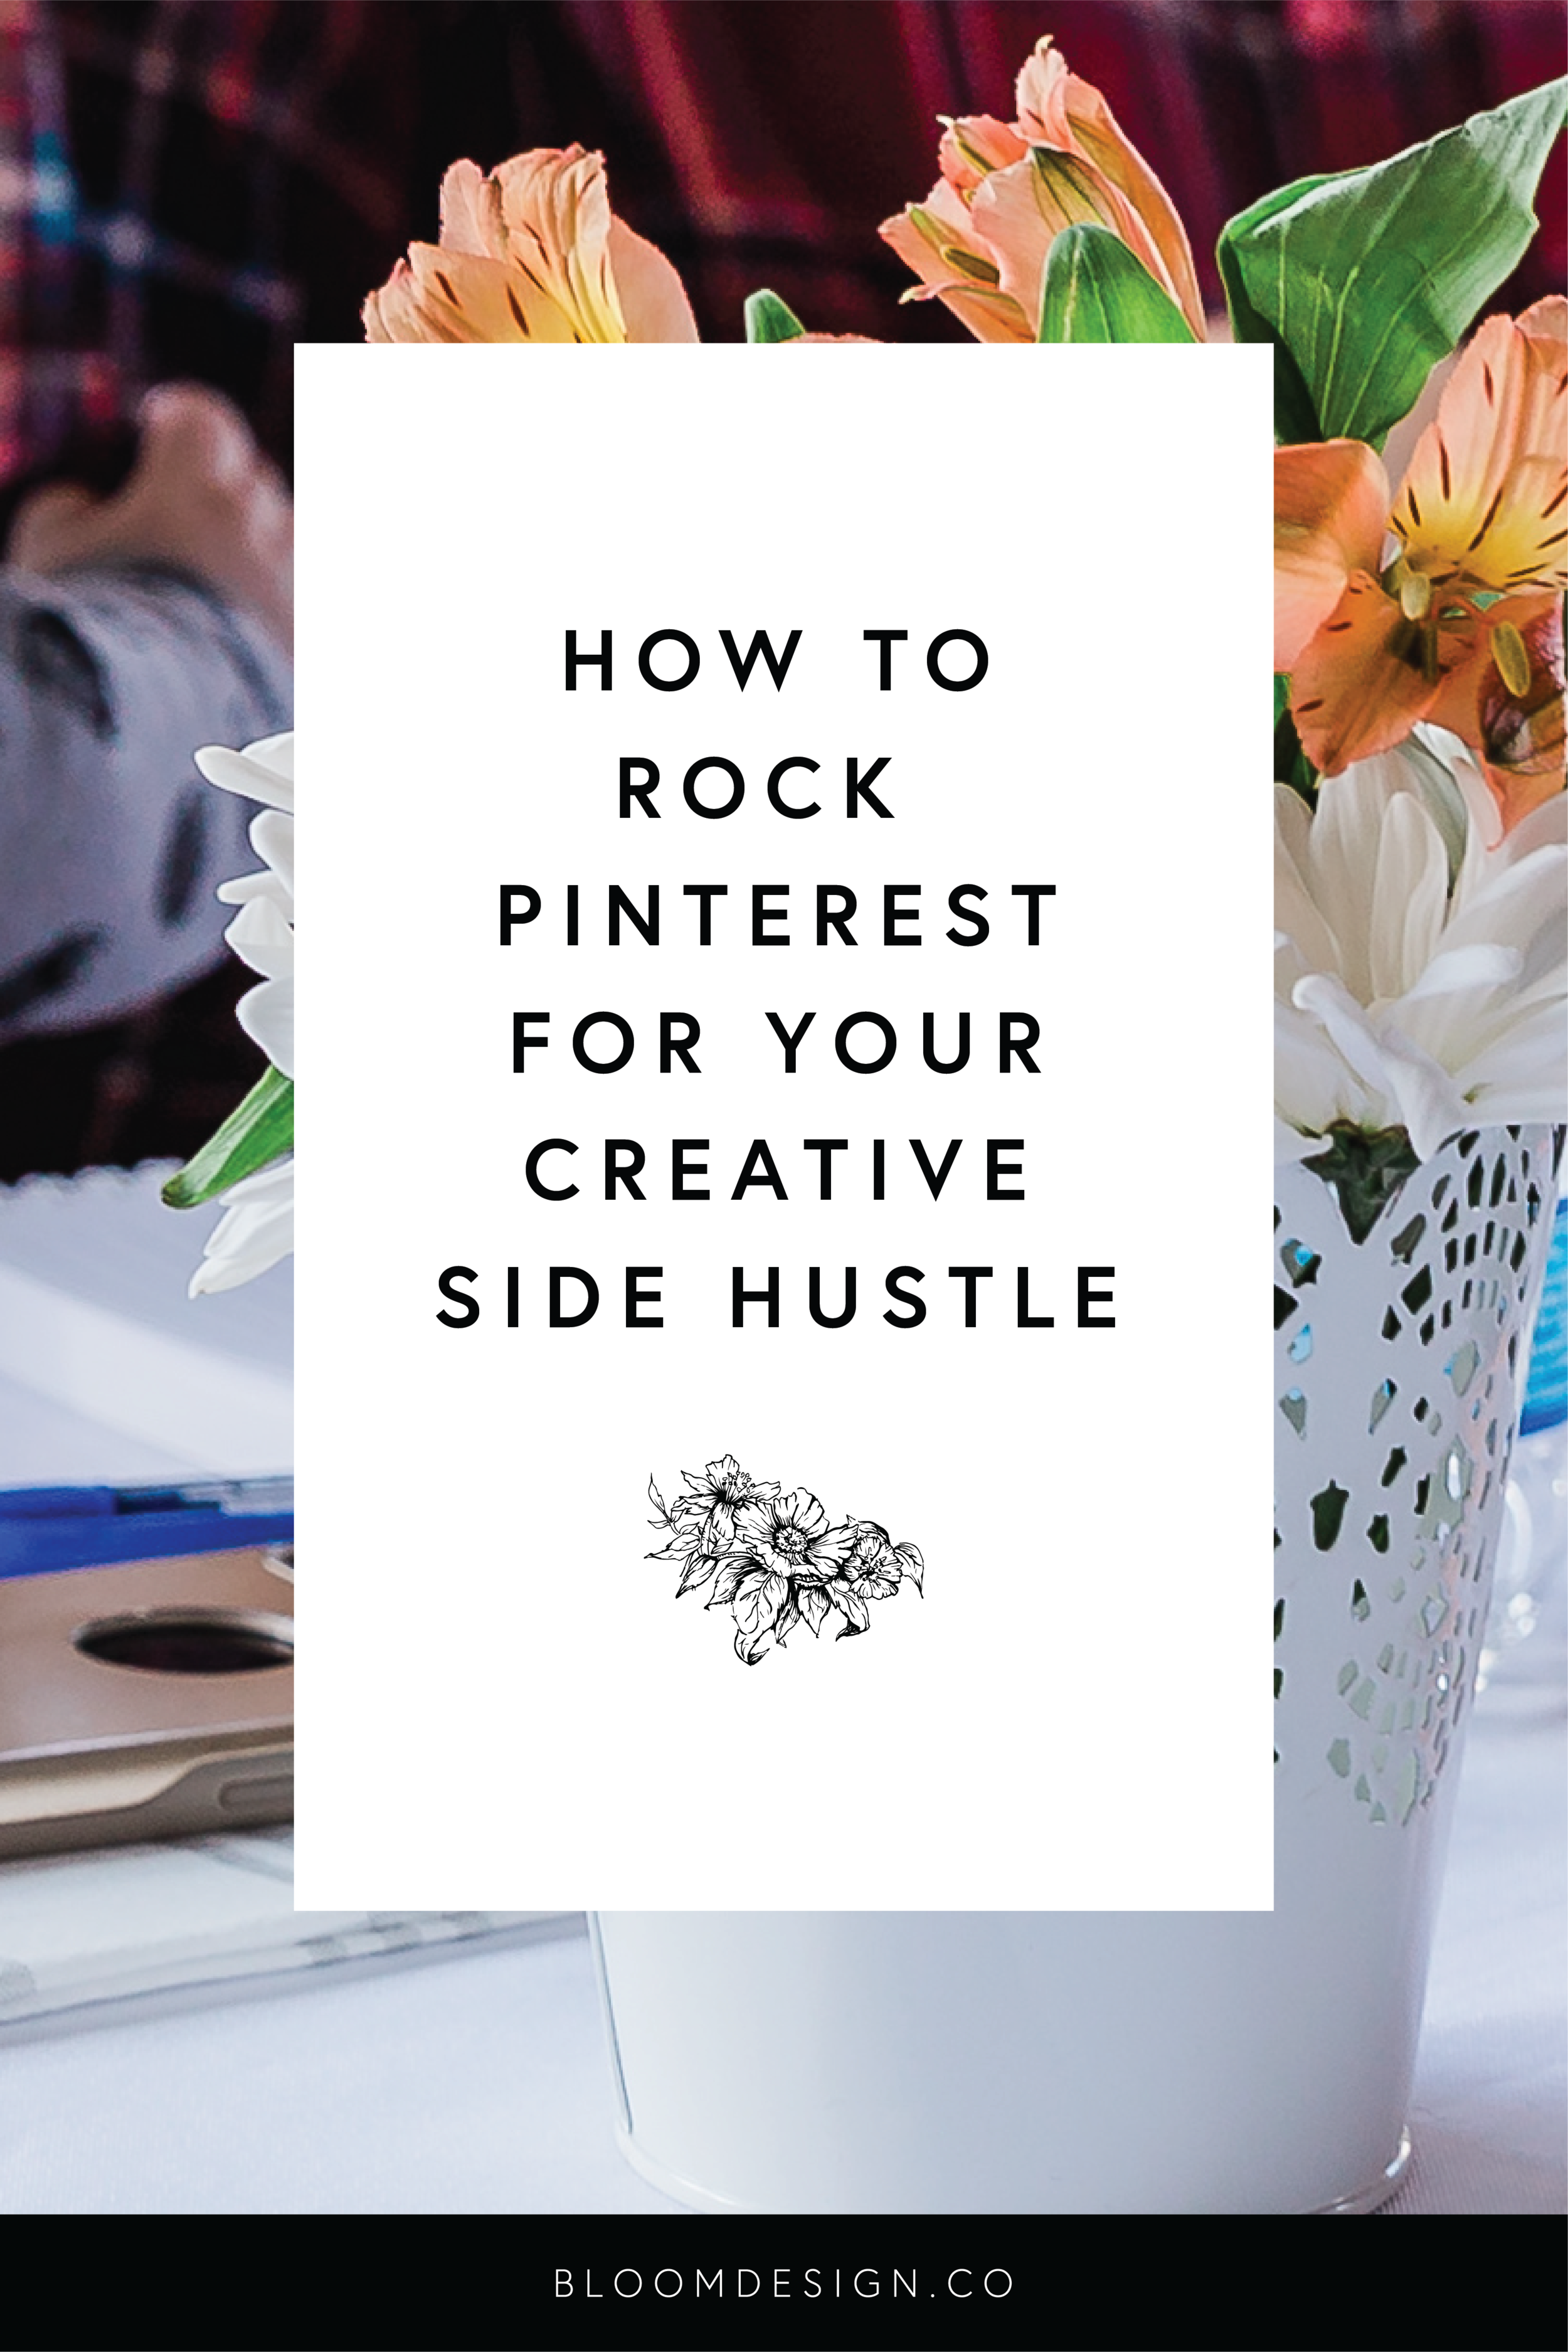 Need a traffic boost? My recommendation is to spend some time developing a pinning strategy to grow your business' website presence on Pinterest and ultimately search engines. Pinterest is online marketing's best kept secret because it's more of a search engine than a social platform, and often gets neglected by small business owners looking to grow their businesses online! #momboss #bossbabe #pinterestmarketing #smallbusiness #sahm #wahm #workathomemama #onlinemarketing #SEO #creativebiz #sidehustle